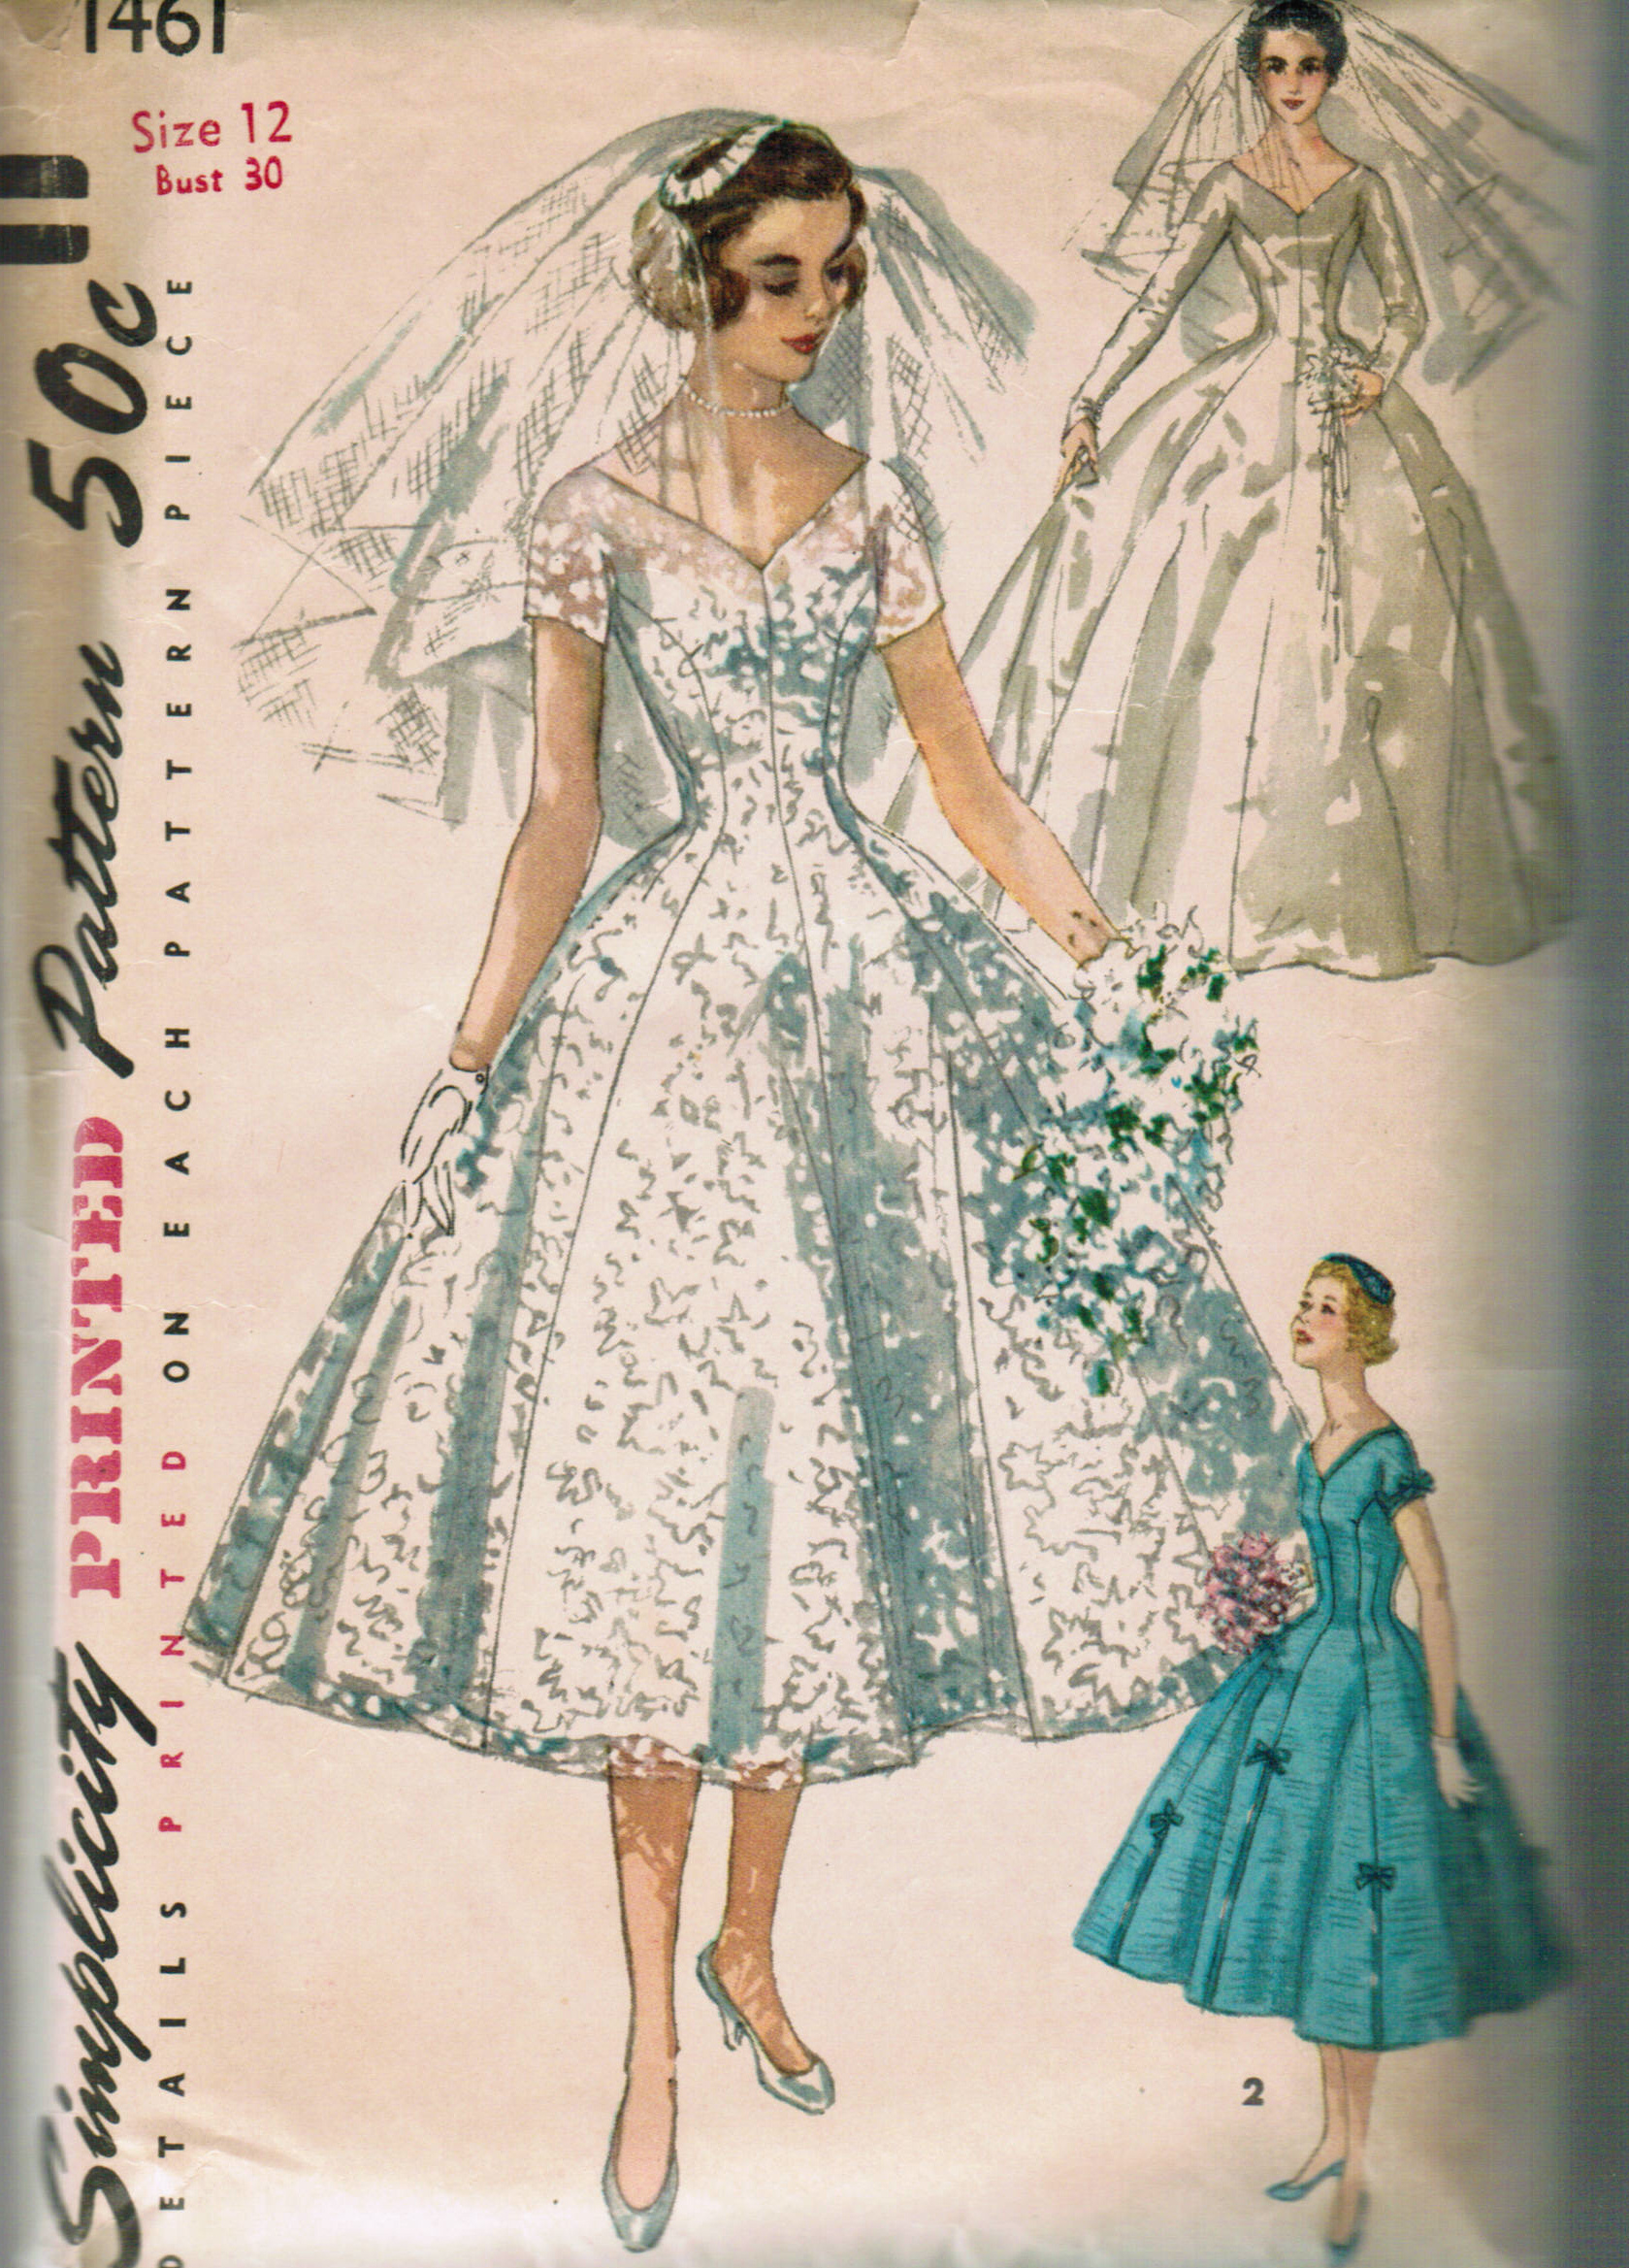 Simplicity 1461 Vintage Sewing Patterns Fandom Powered